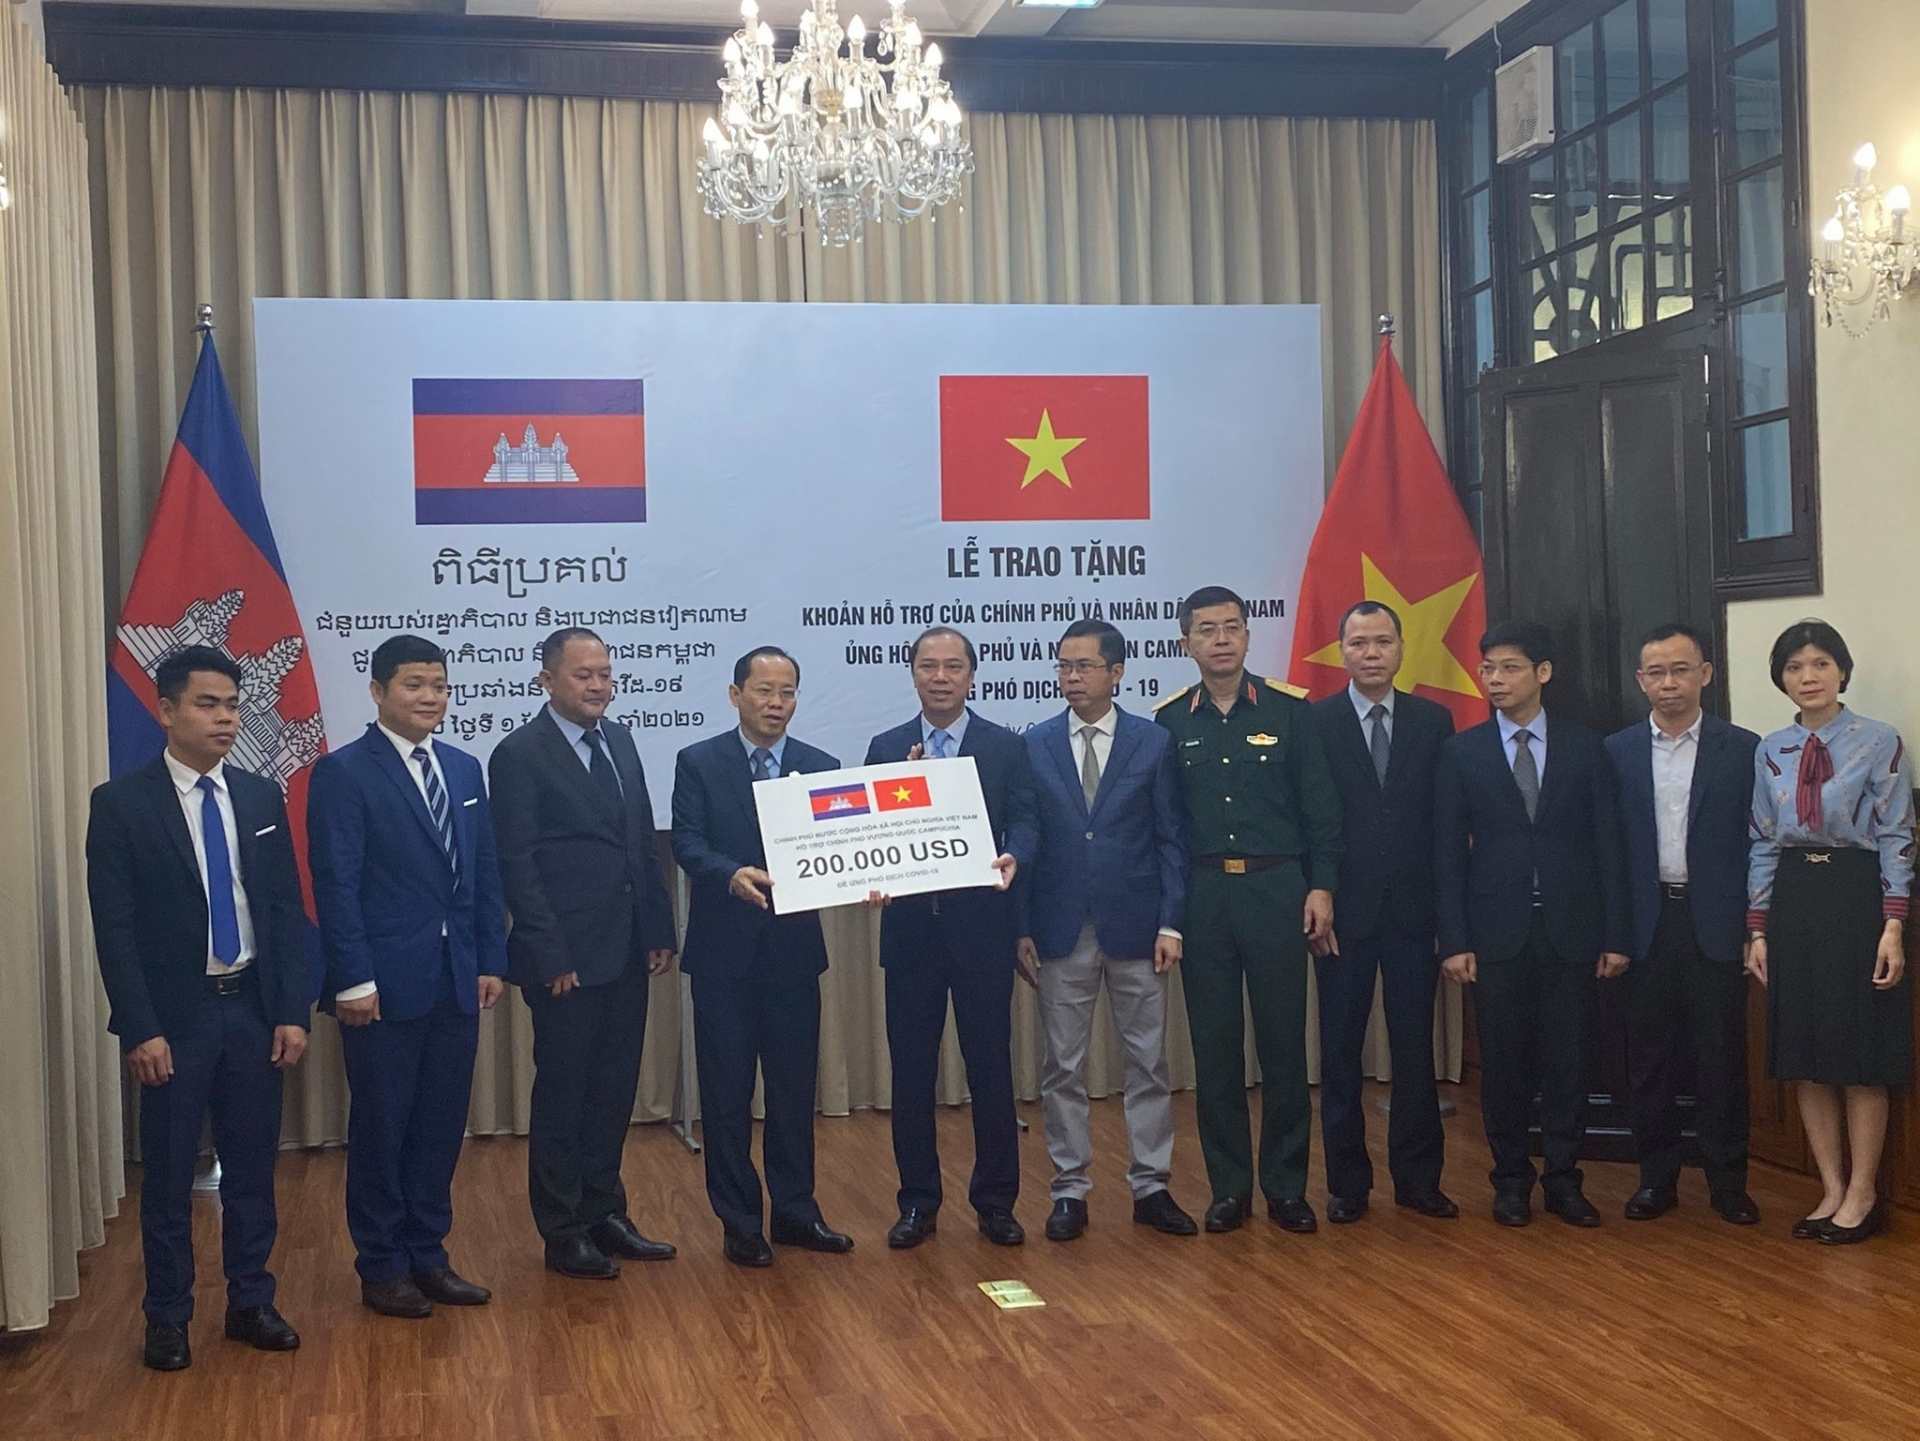 Cambodian PM sends letter thanking Vietnam for COVID 19 aid